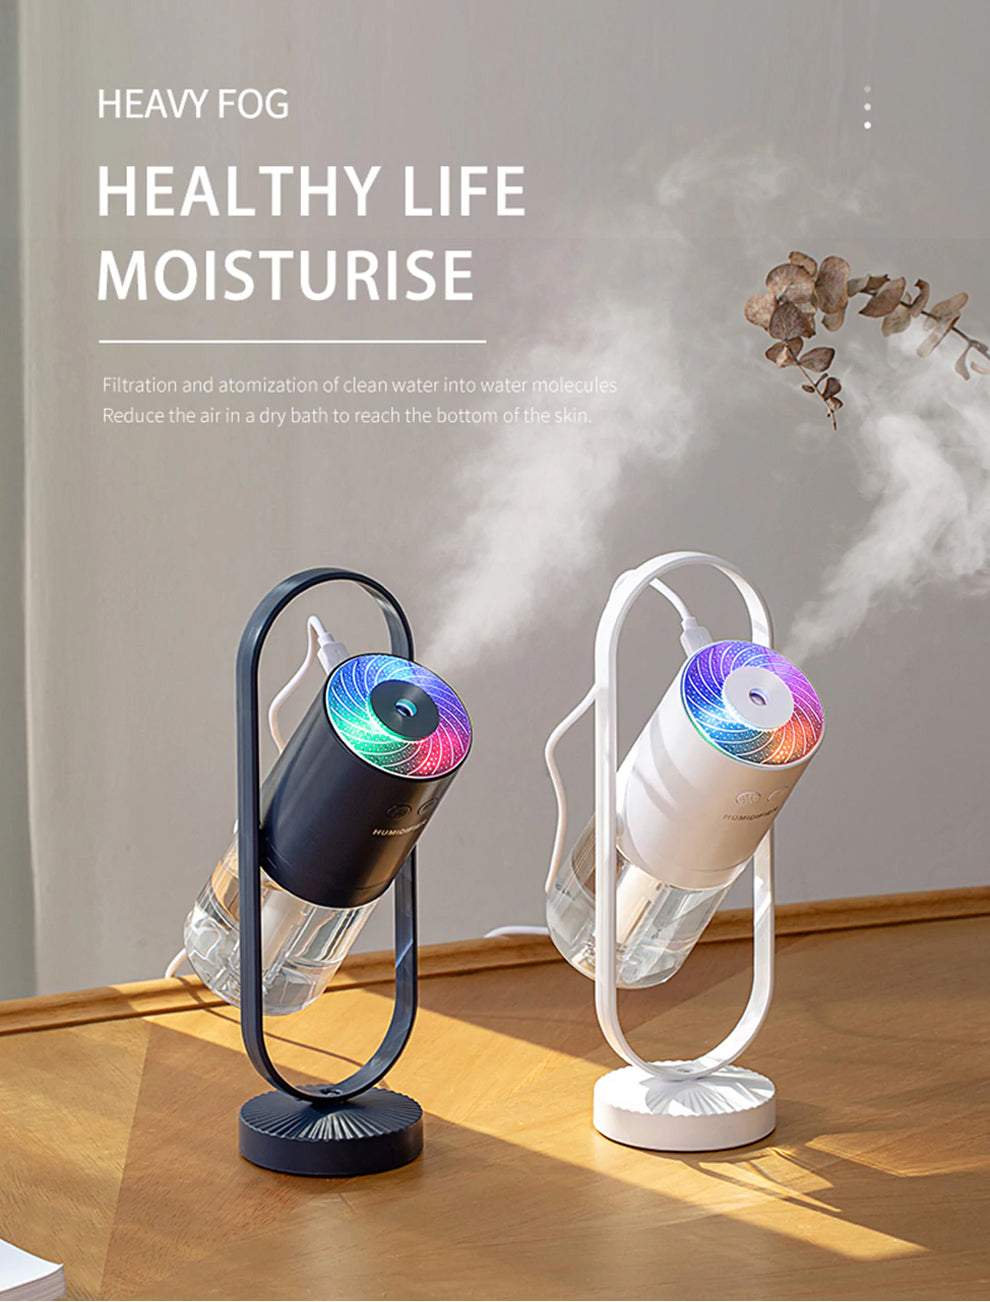 Humidifier Misting